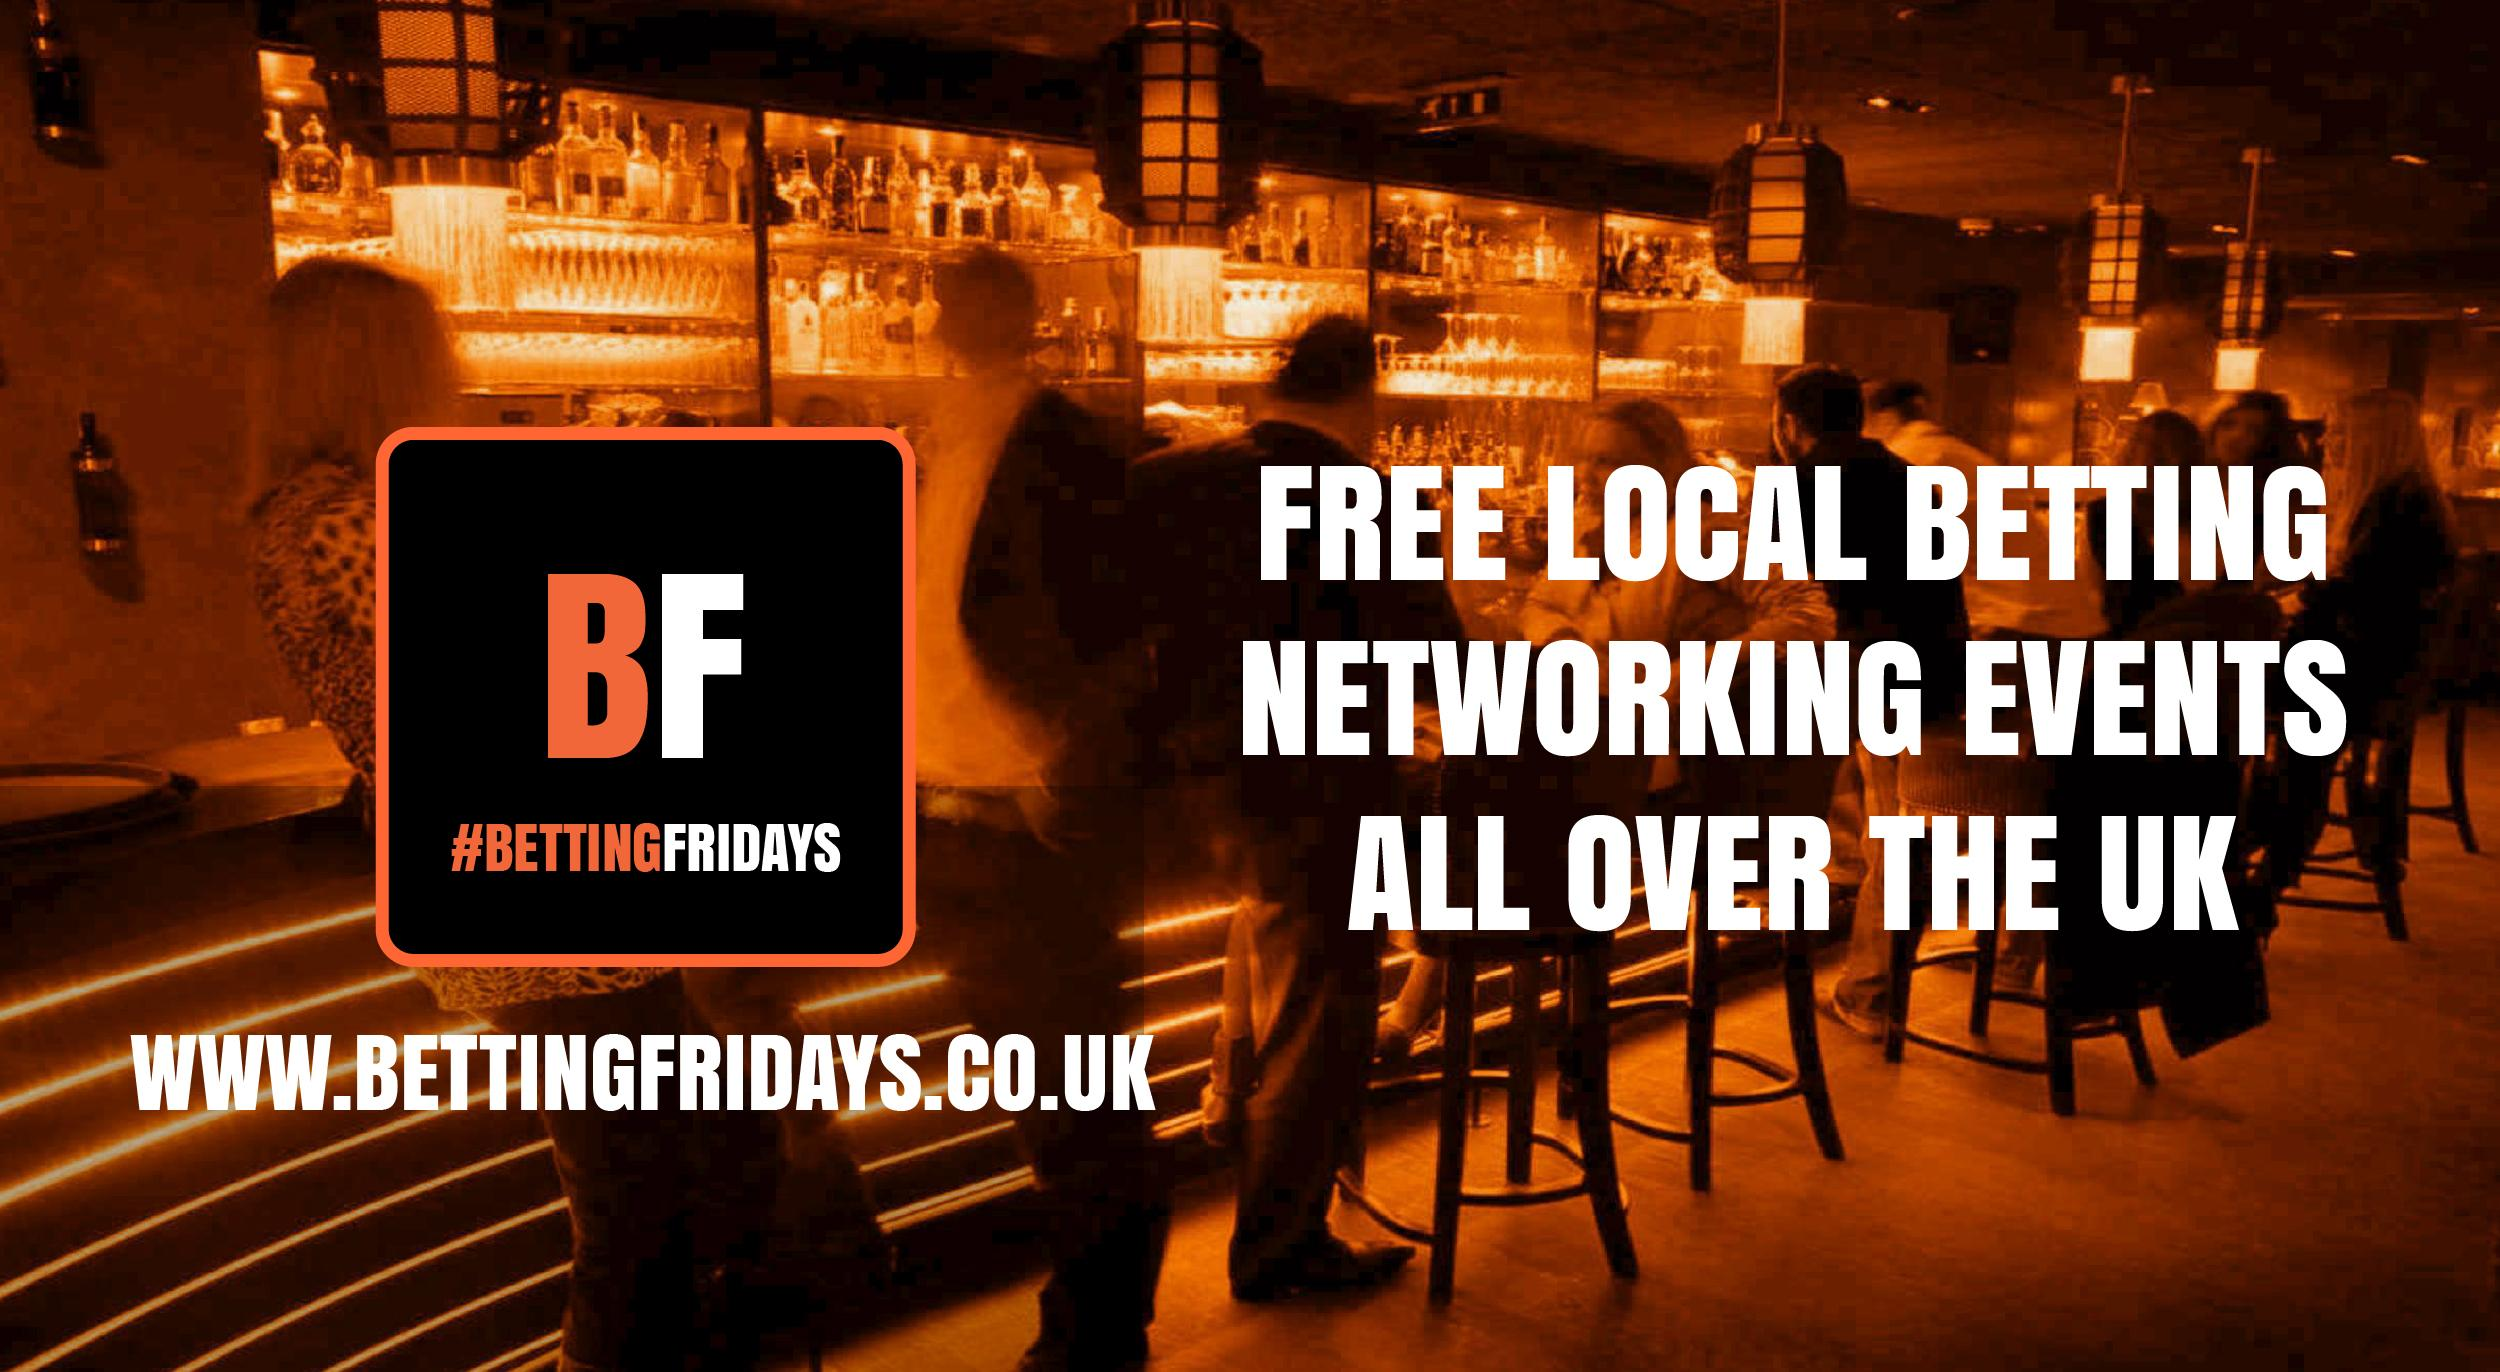 Betting Fridays! Free betting networking event in Stockport